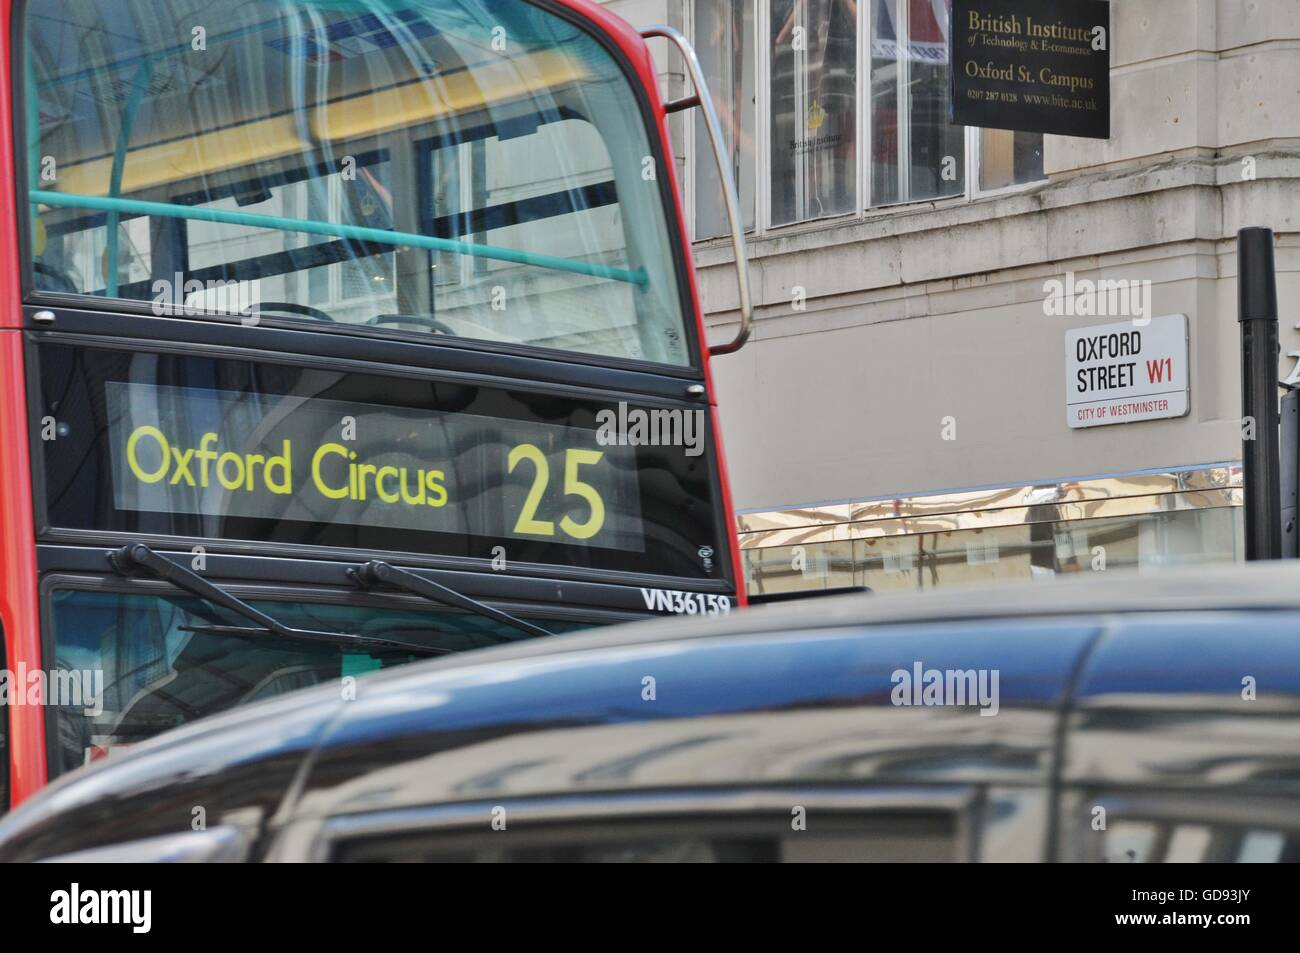 London mayor, Sadiq Khan, will create a pedestrianized Oxford Street; from Tottenham Court Road in the east, to - Stock Image